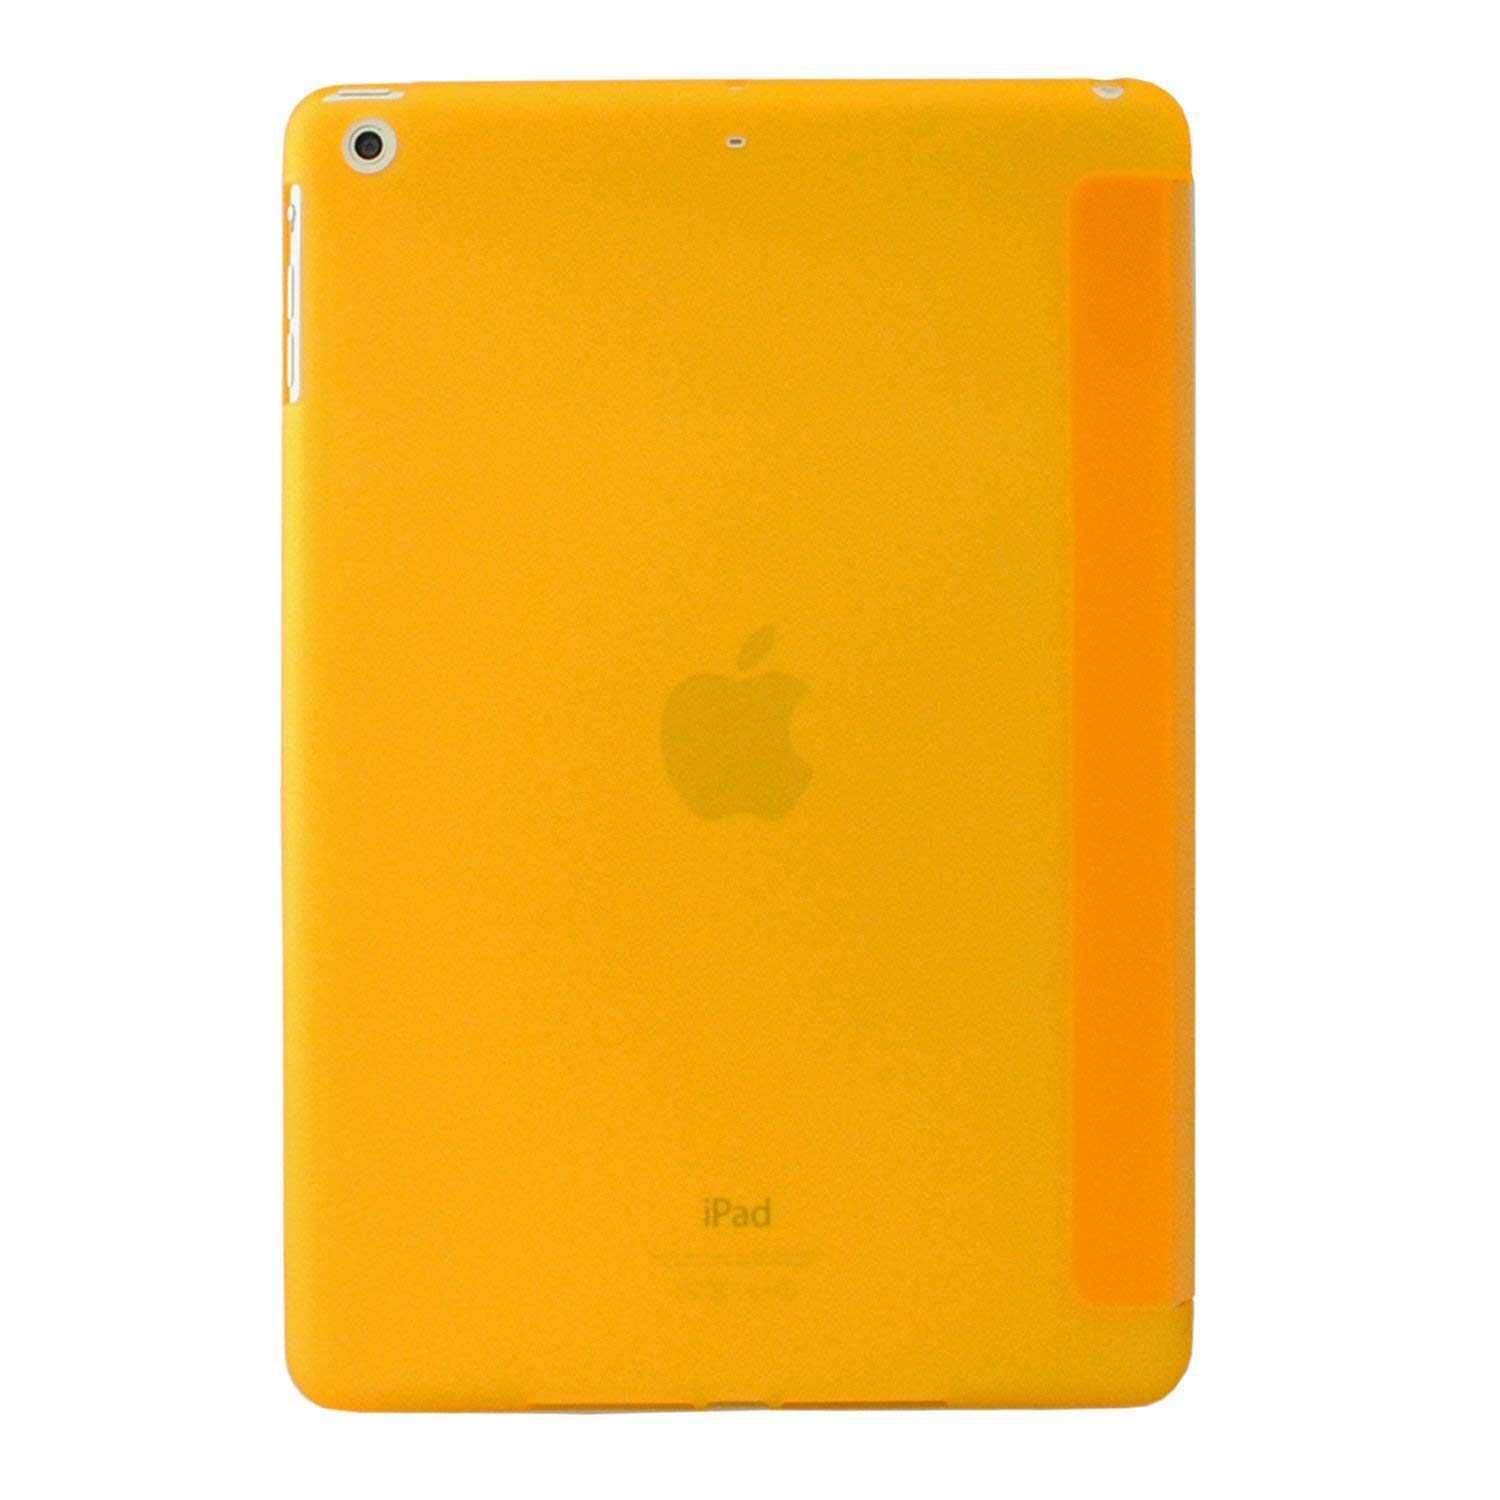 MIIU by Digiparts Ultra Thin Magnetic Smart Cover & Clear Back Case for Apple iPad Air(5th Gen), Yellow - image 2 of 5